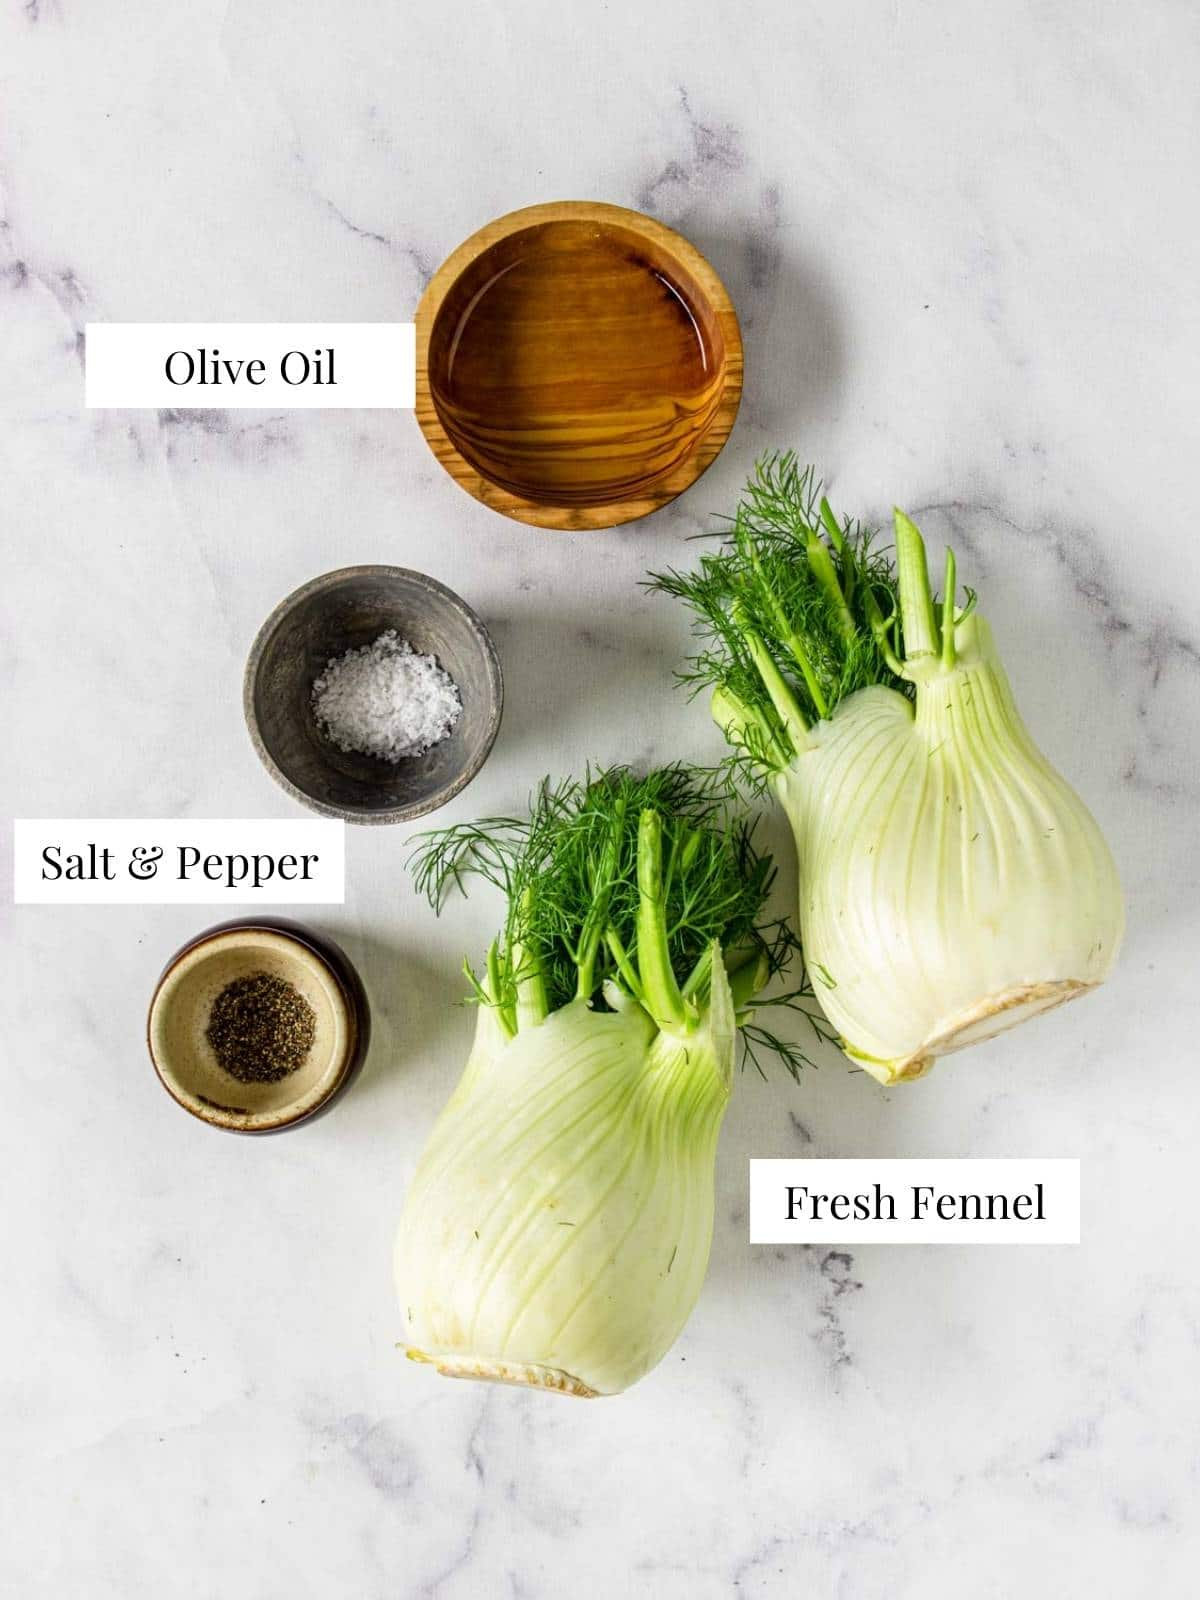 ingredients to make roasted fennel on a table with text labels